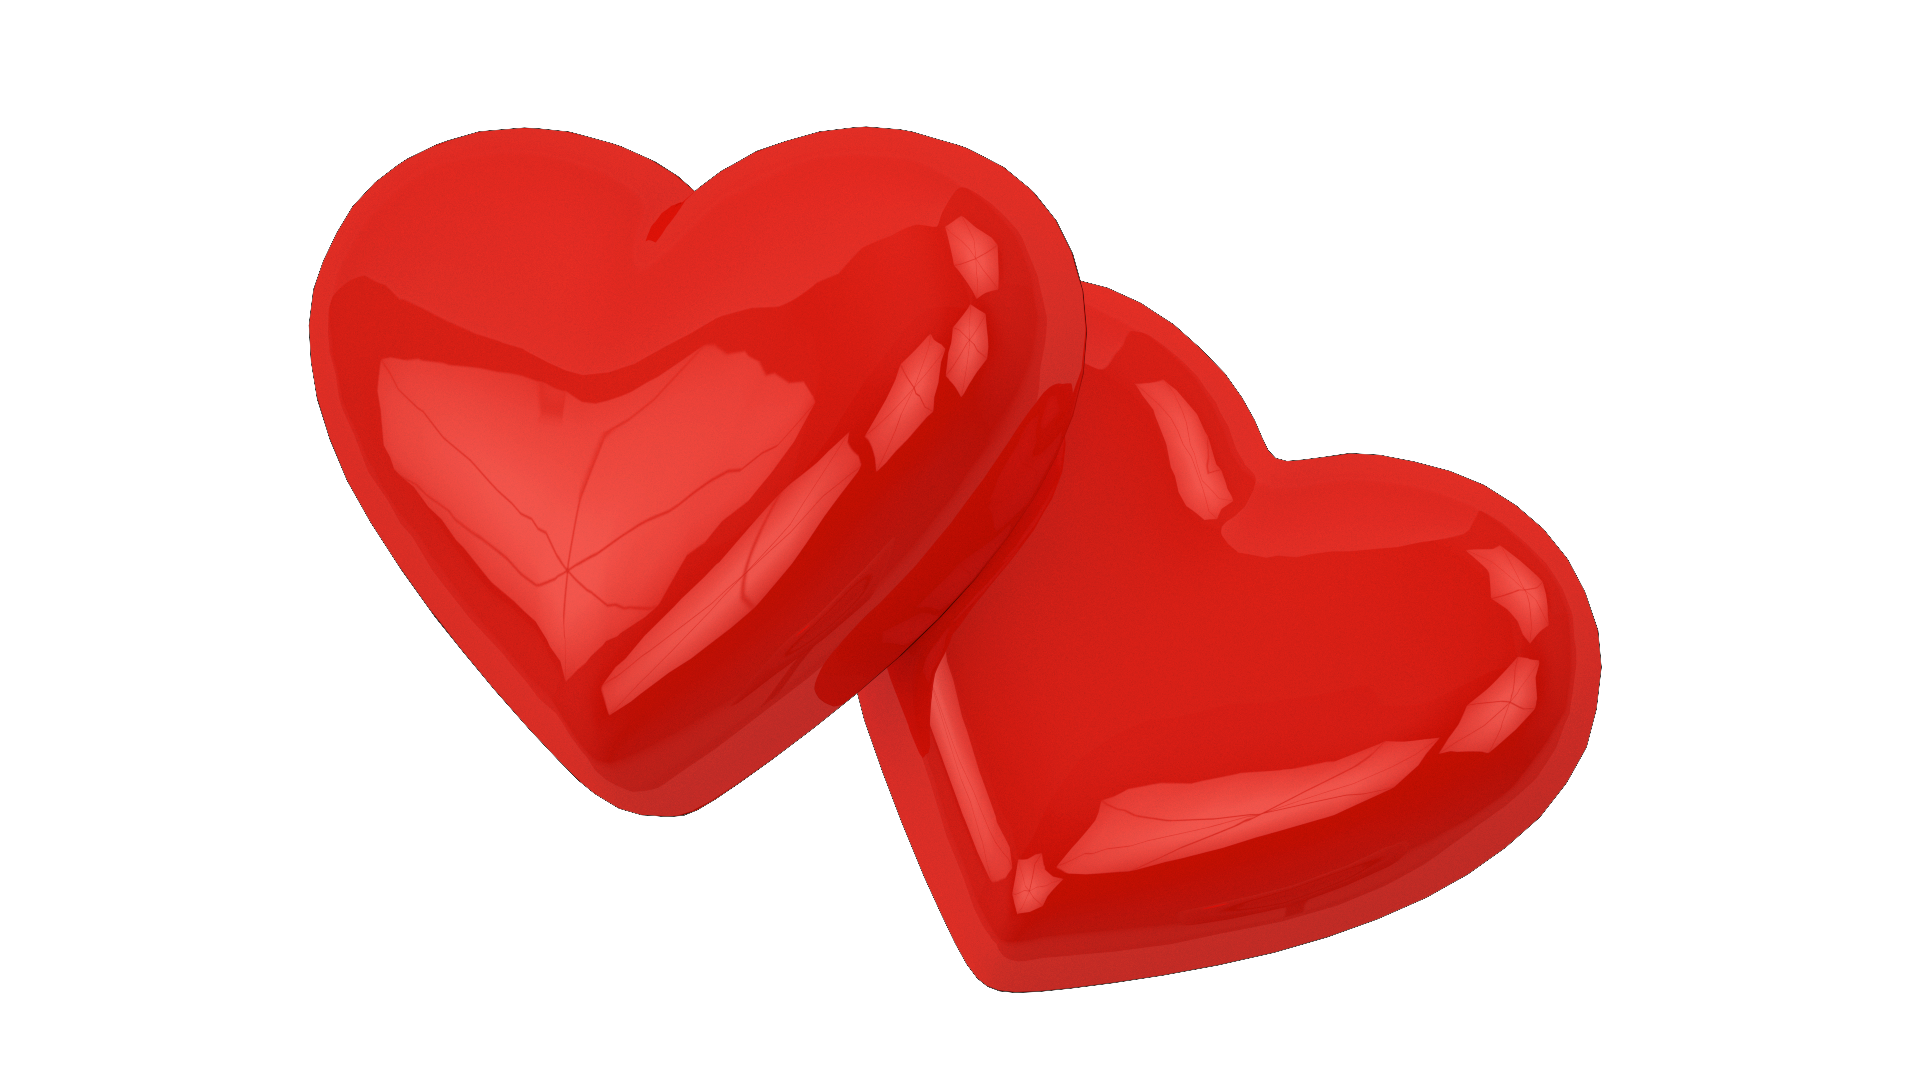 Two Love Hearts Png Image Download Love Heart Free Anime Photo Frame Gallery